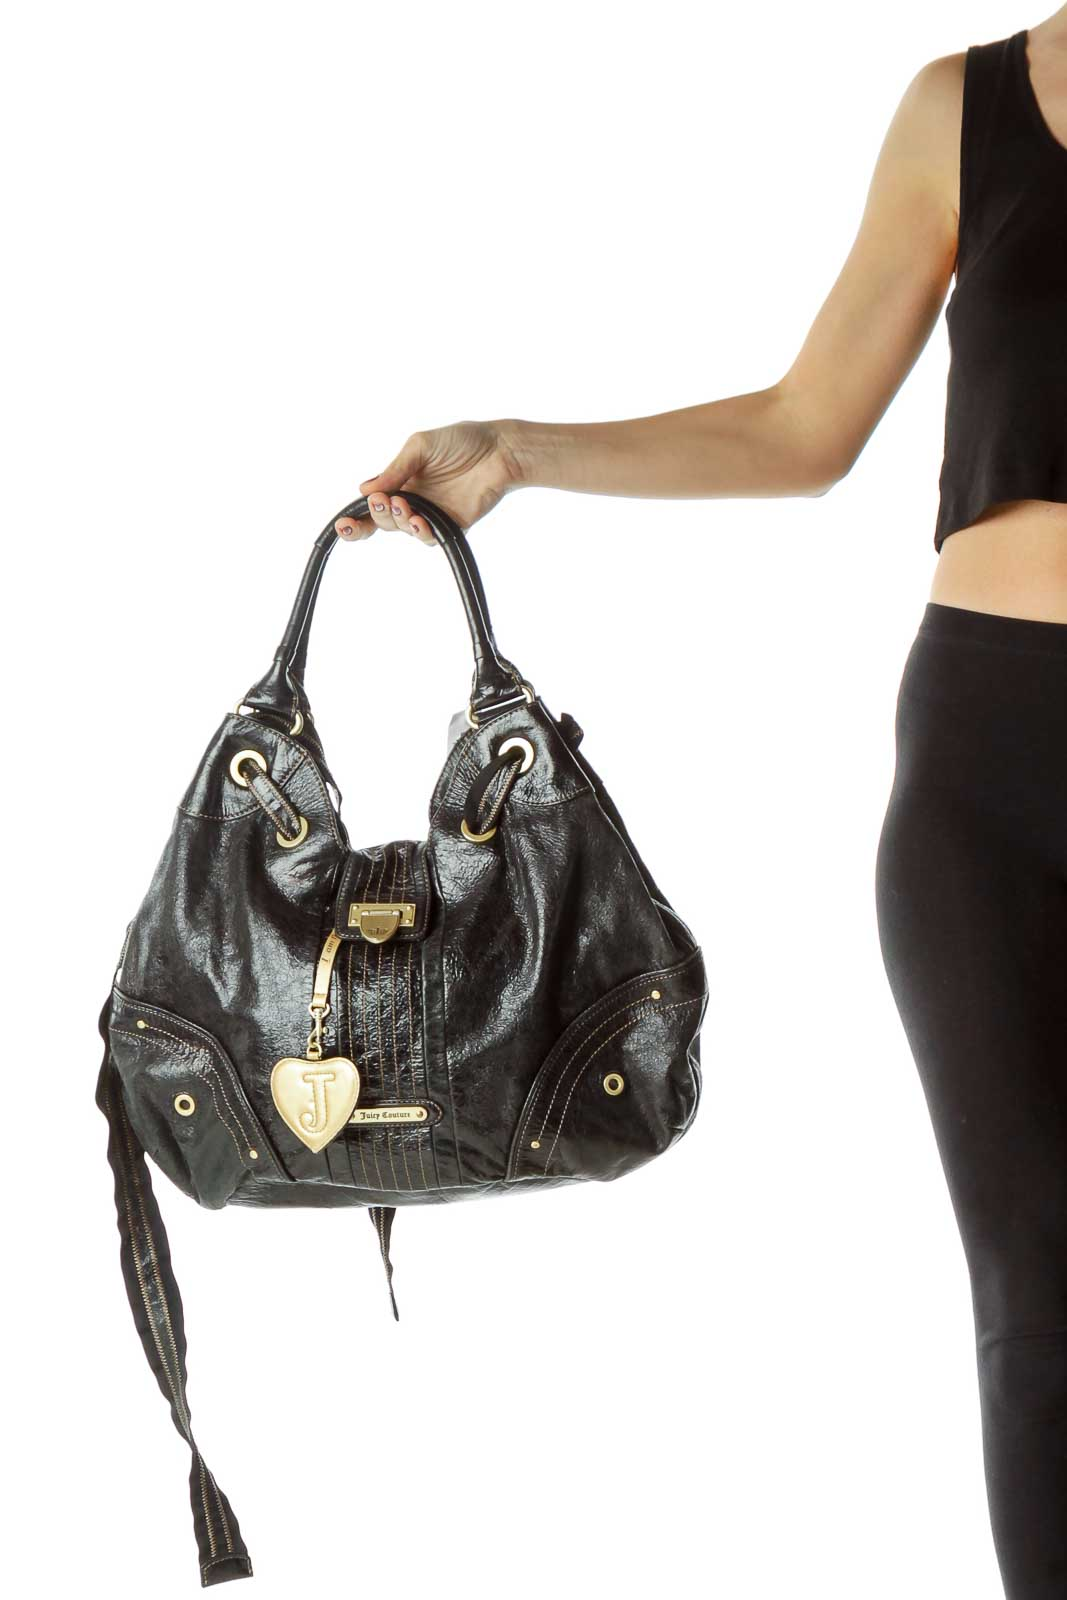 Black Patent Leather Shoulder Bag